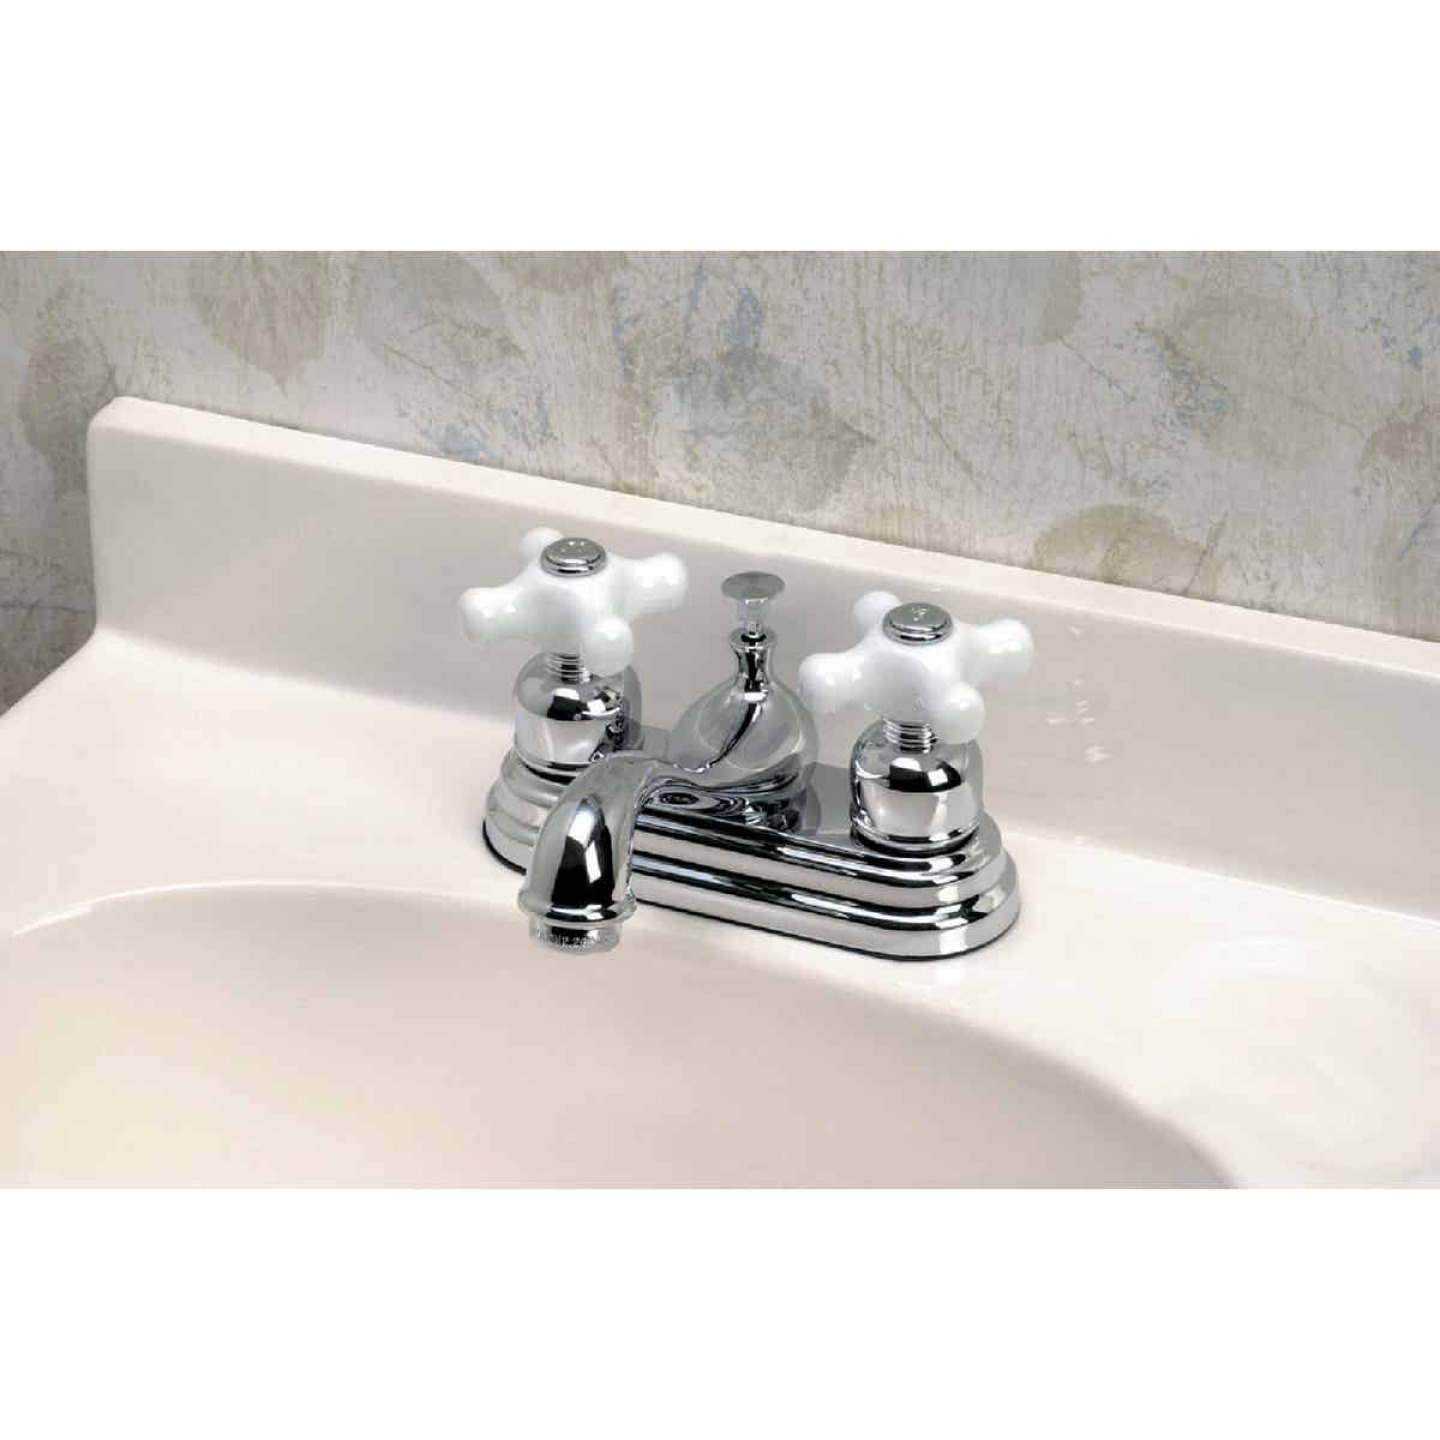 Home Impressions Chrome 2-Handle Cross Knob 4 In. Centerset Bathroom Faucet with Pop-Up Image 2